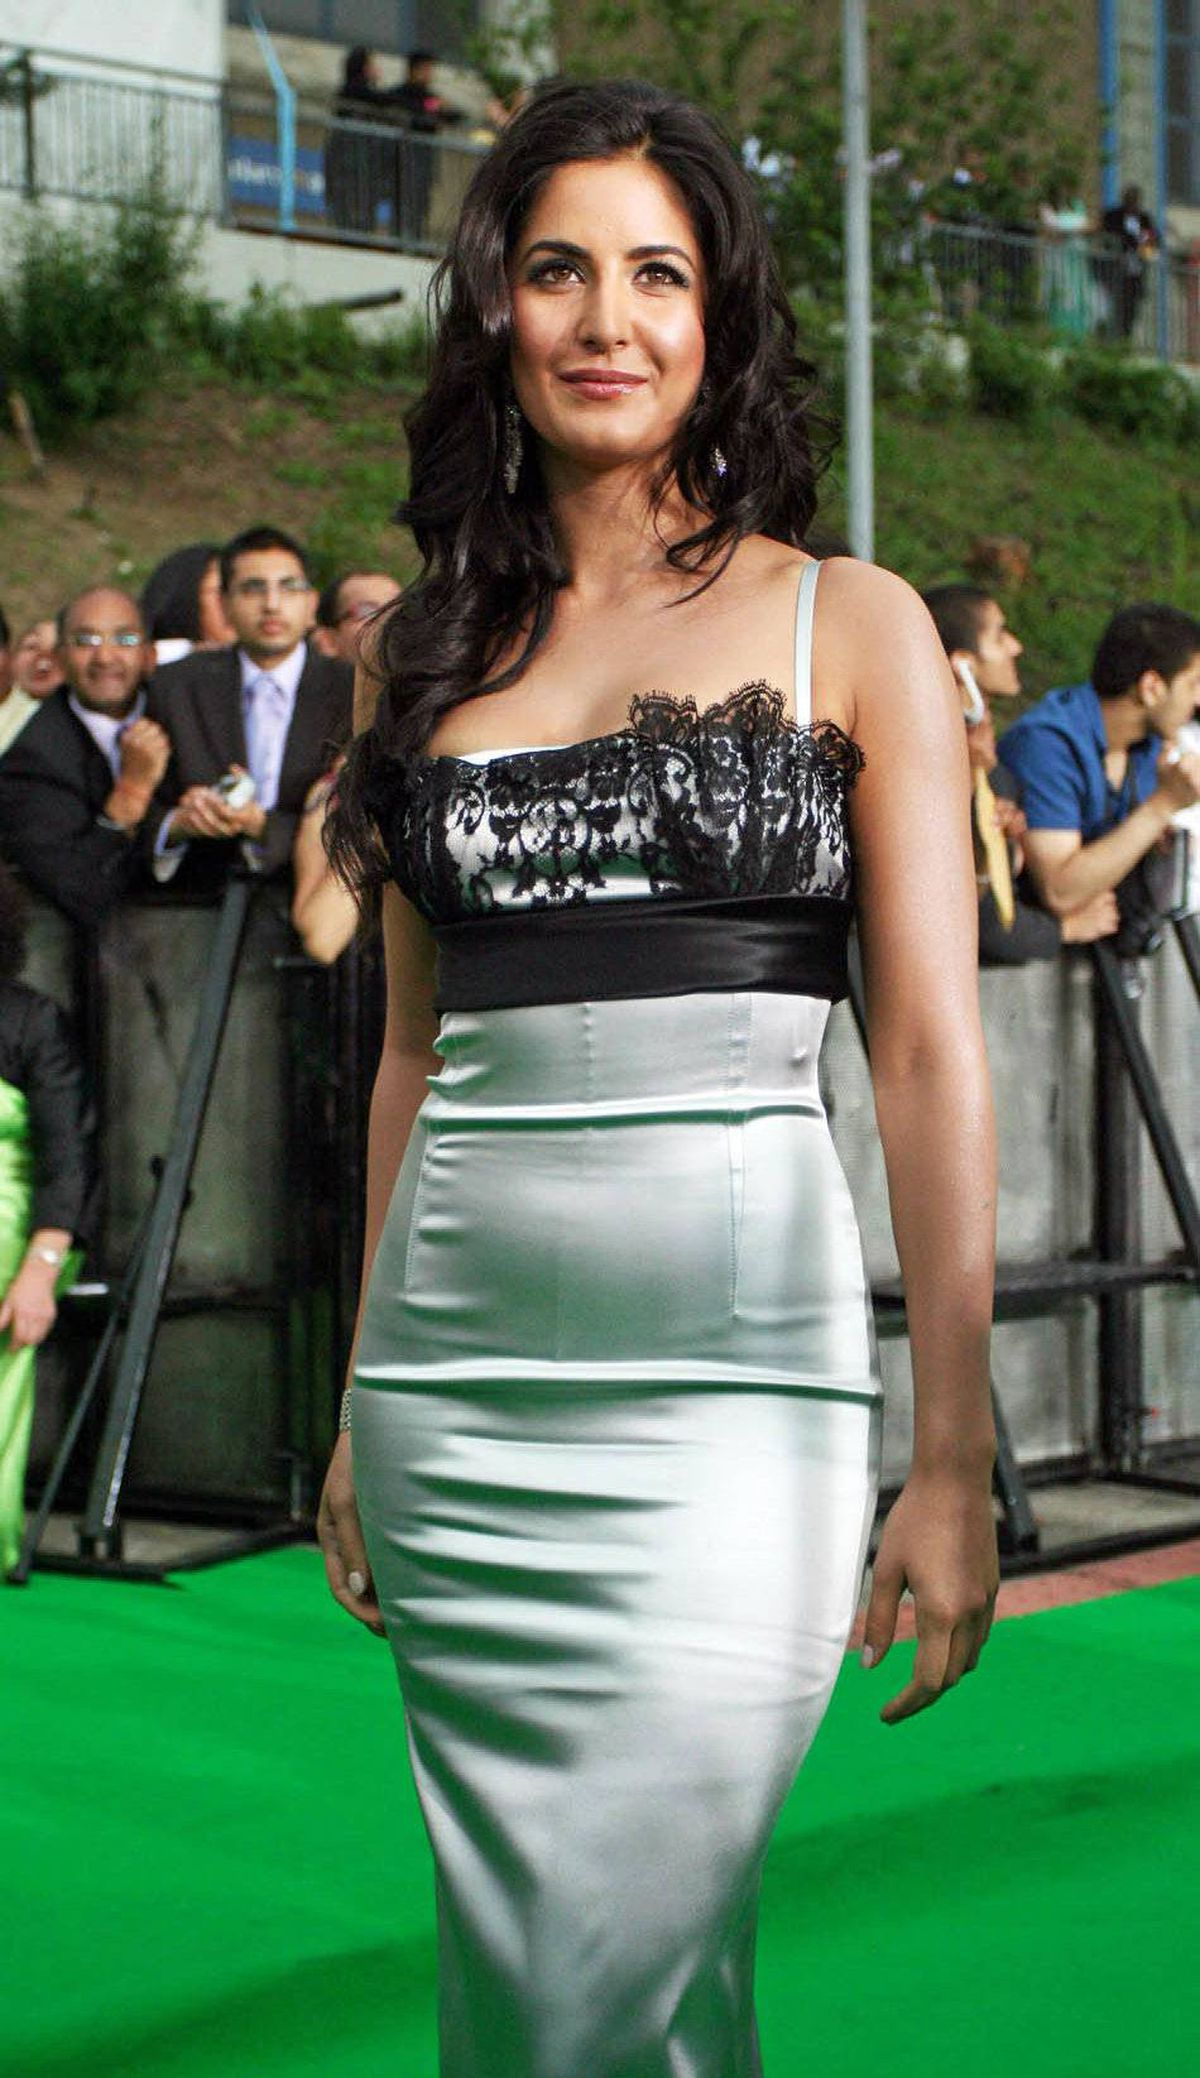 Katrina Kaif, shown during the 2009 festival, was noted for her role as a politician in Raajneeti and her dance number in Sheila ki jawani.